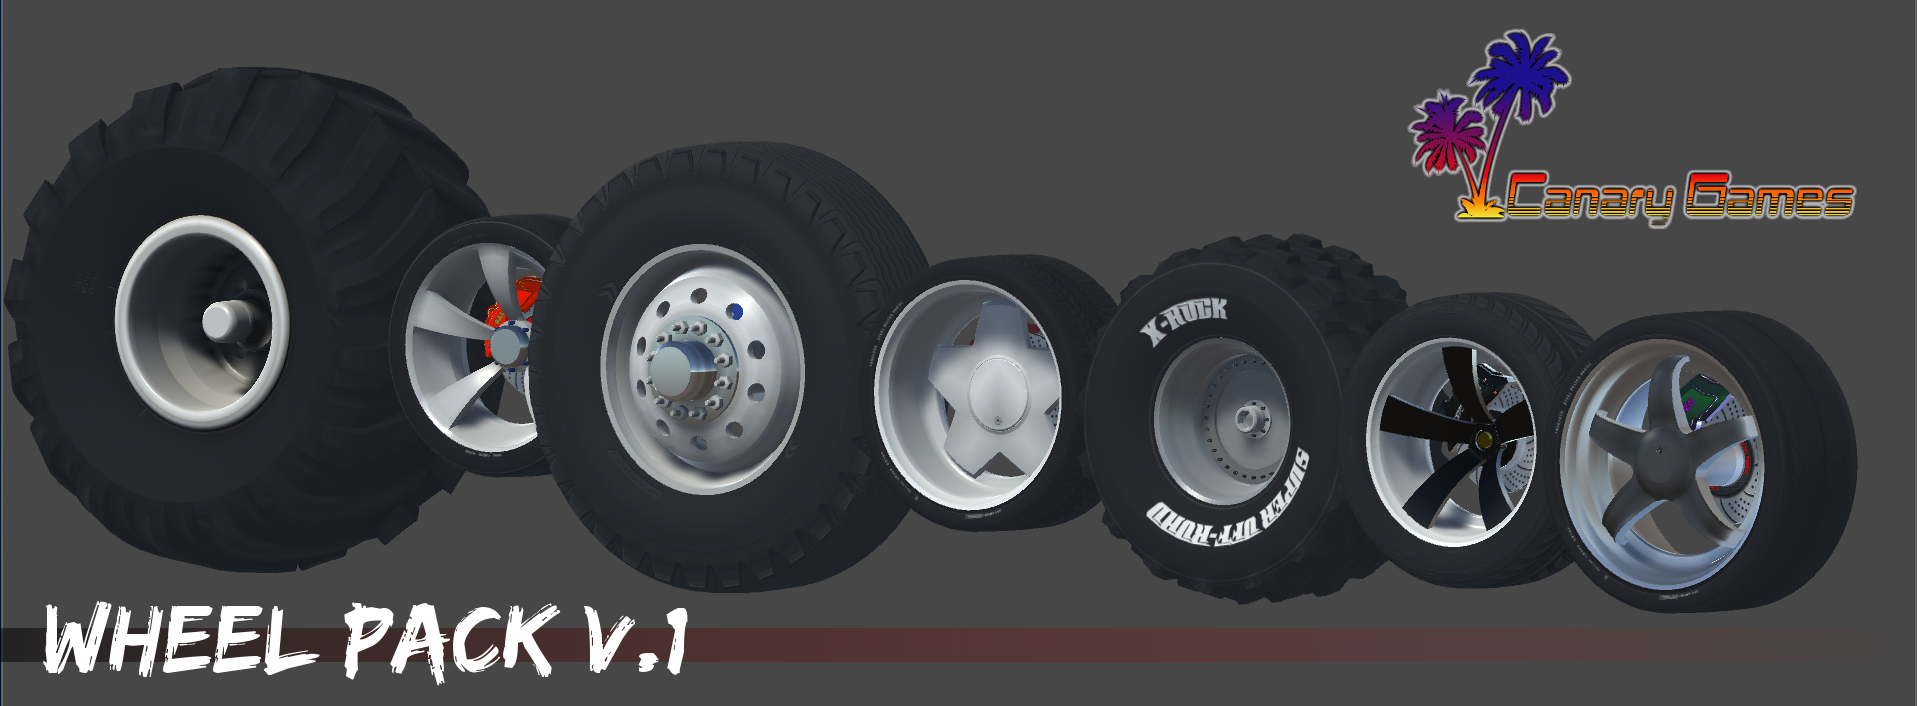 Wheels Pack V.1